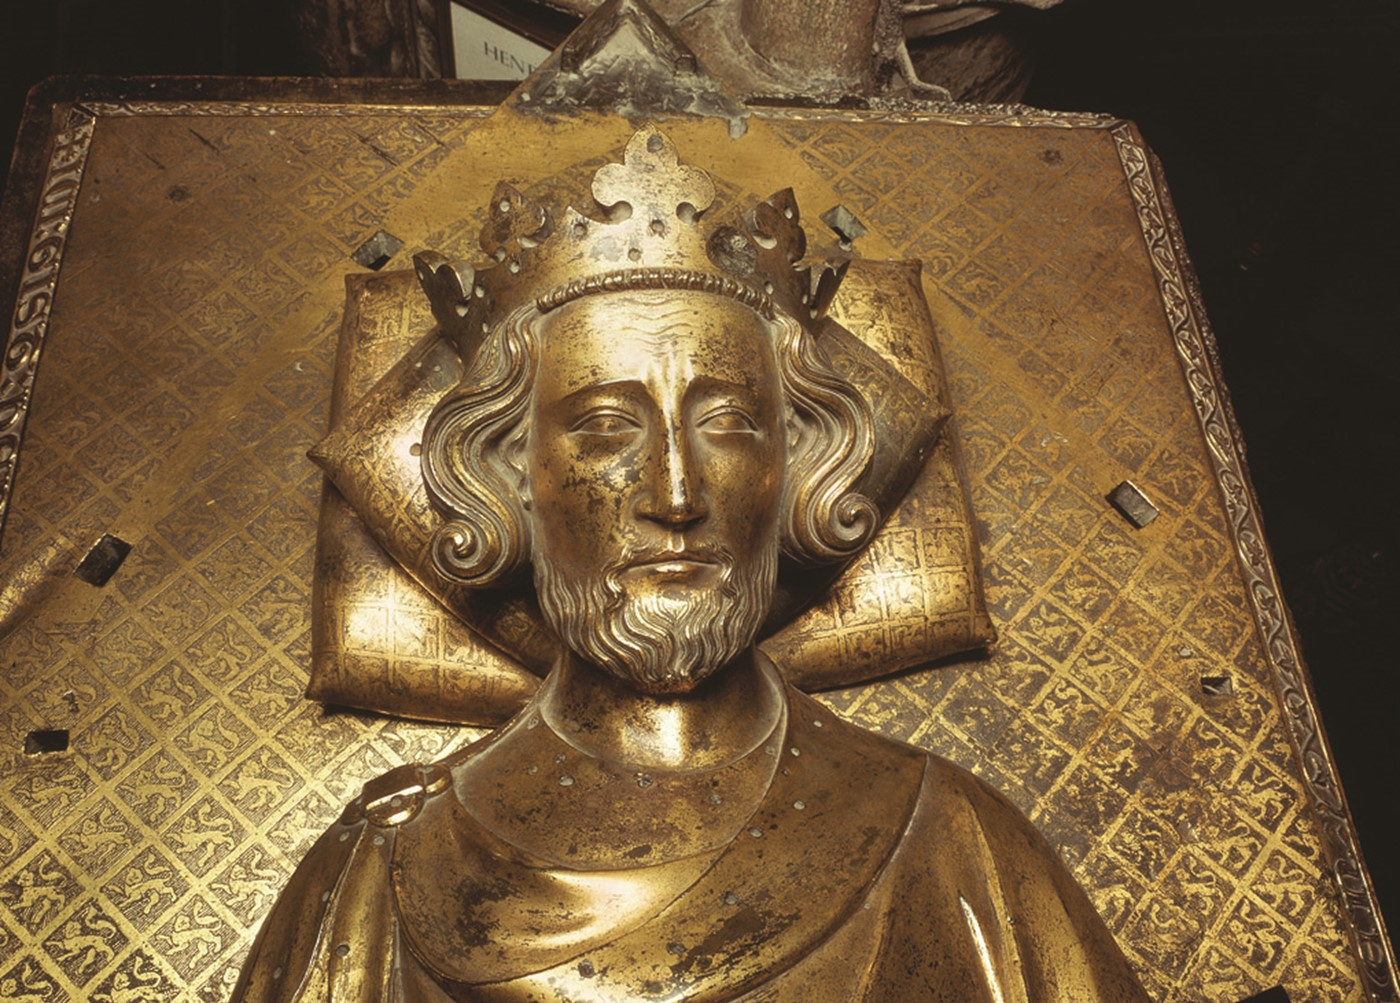 Henry III tomb effigy head & sh (81MB) 300 Westminster Abbey copyright photo.jpg